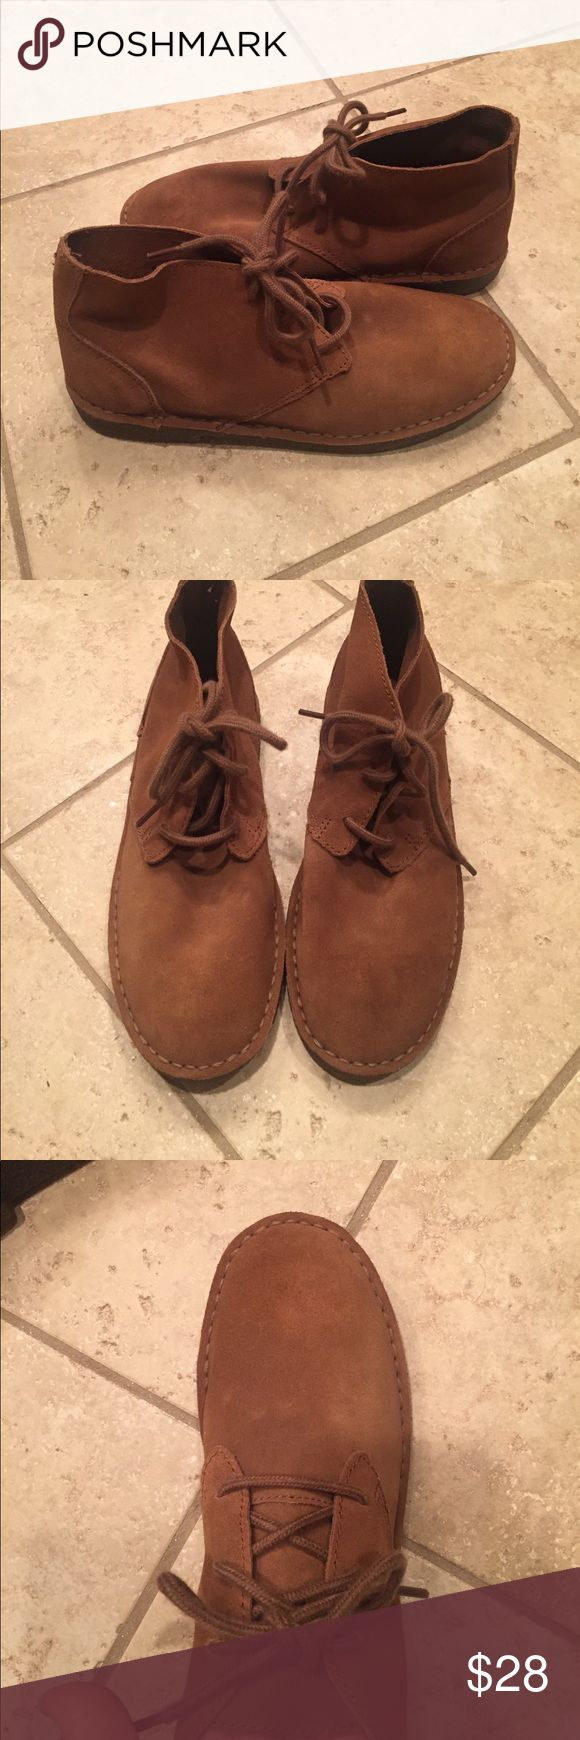 Perry Ellis men's moccasin boots size 8. New! Perry Ellis men's moccasin boots size 8. New! Perfect! No box. Perfect for fall! Perry  Ellis Shoes Boots